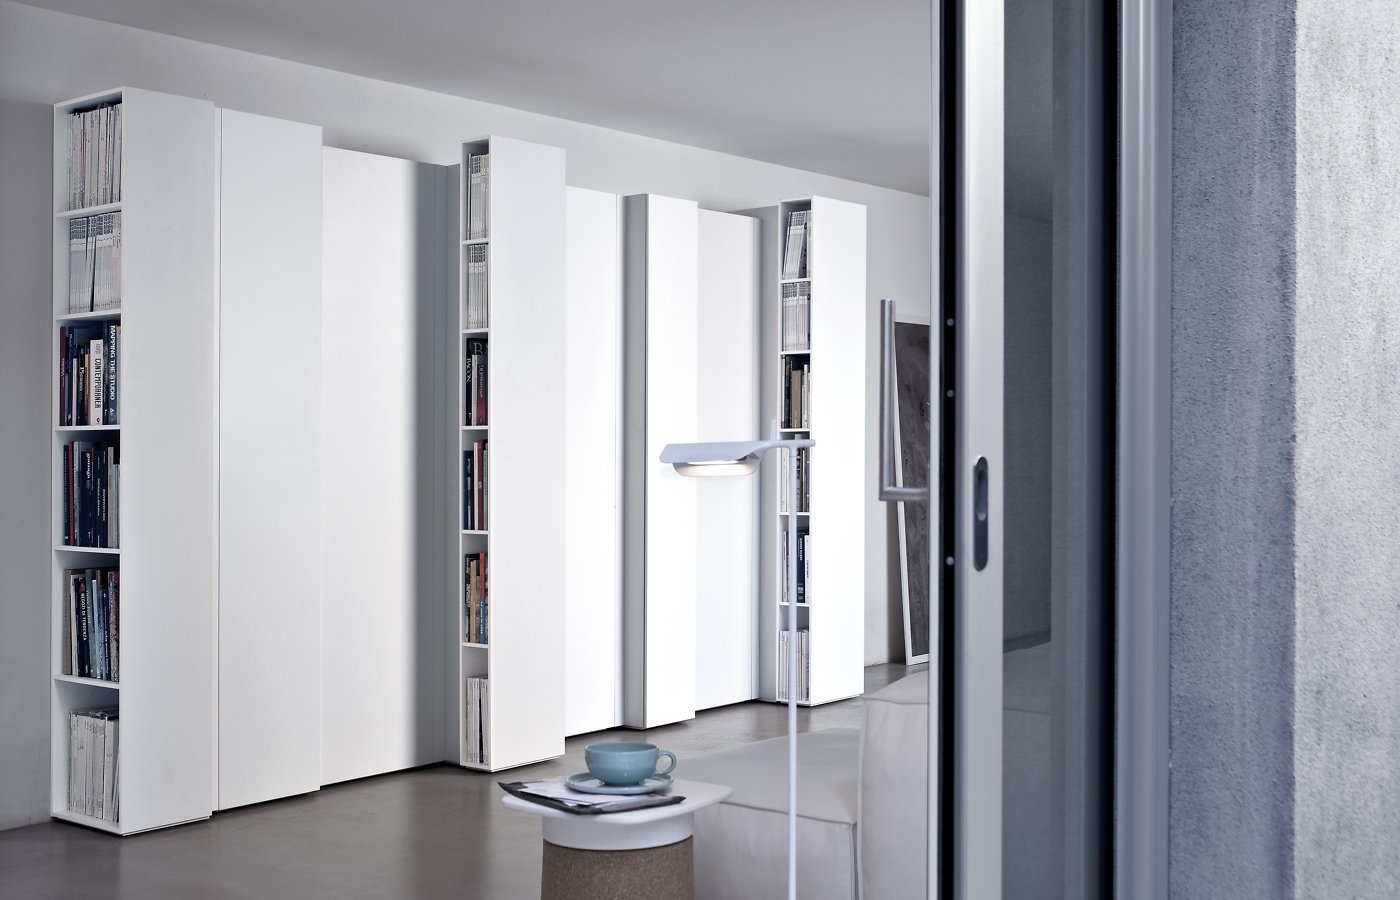 Blio Bookcase from Kristalia, designed by Michael Geldmacher